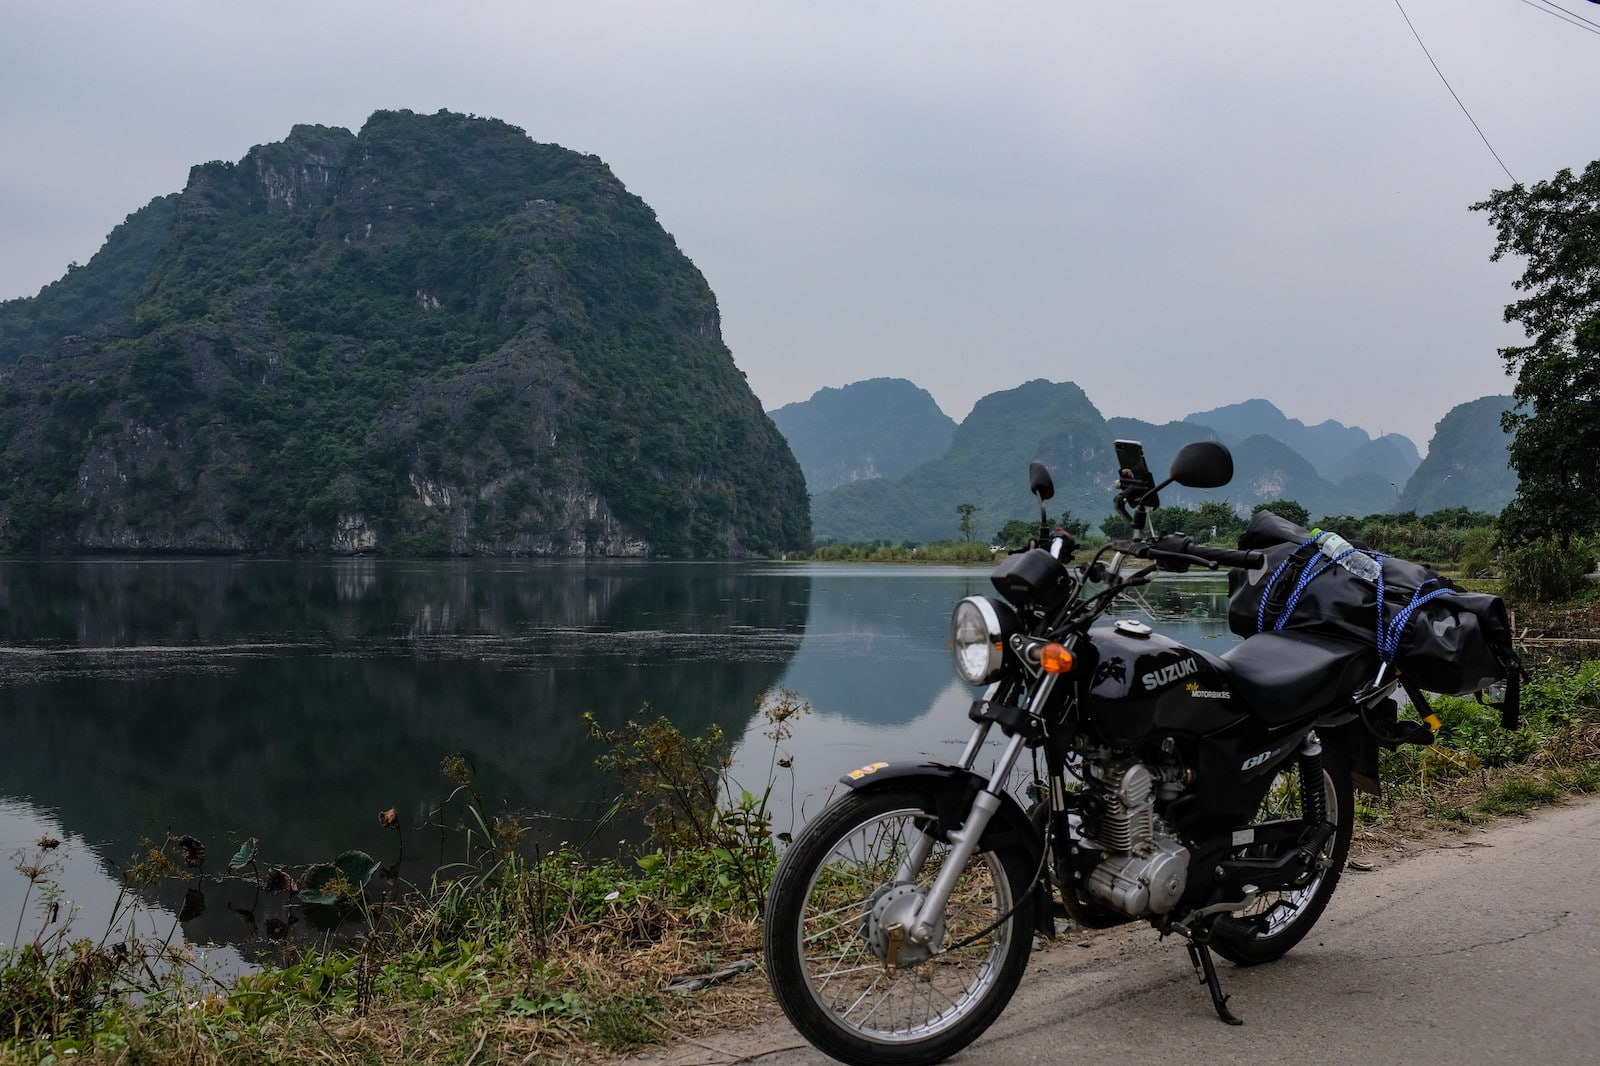 Image of a motorbike in Ninh Binh with karsts in the background